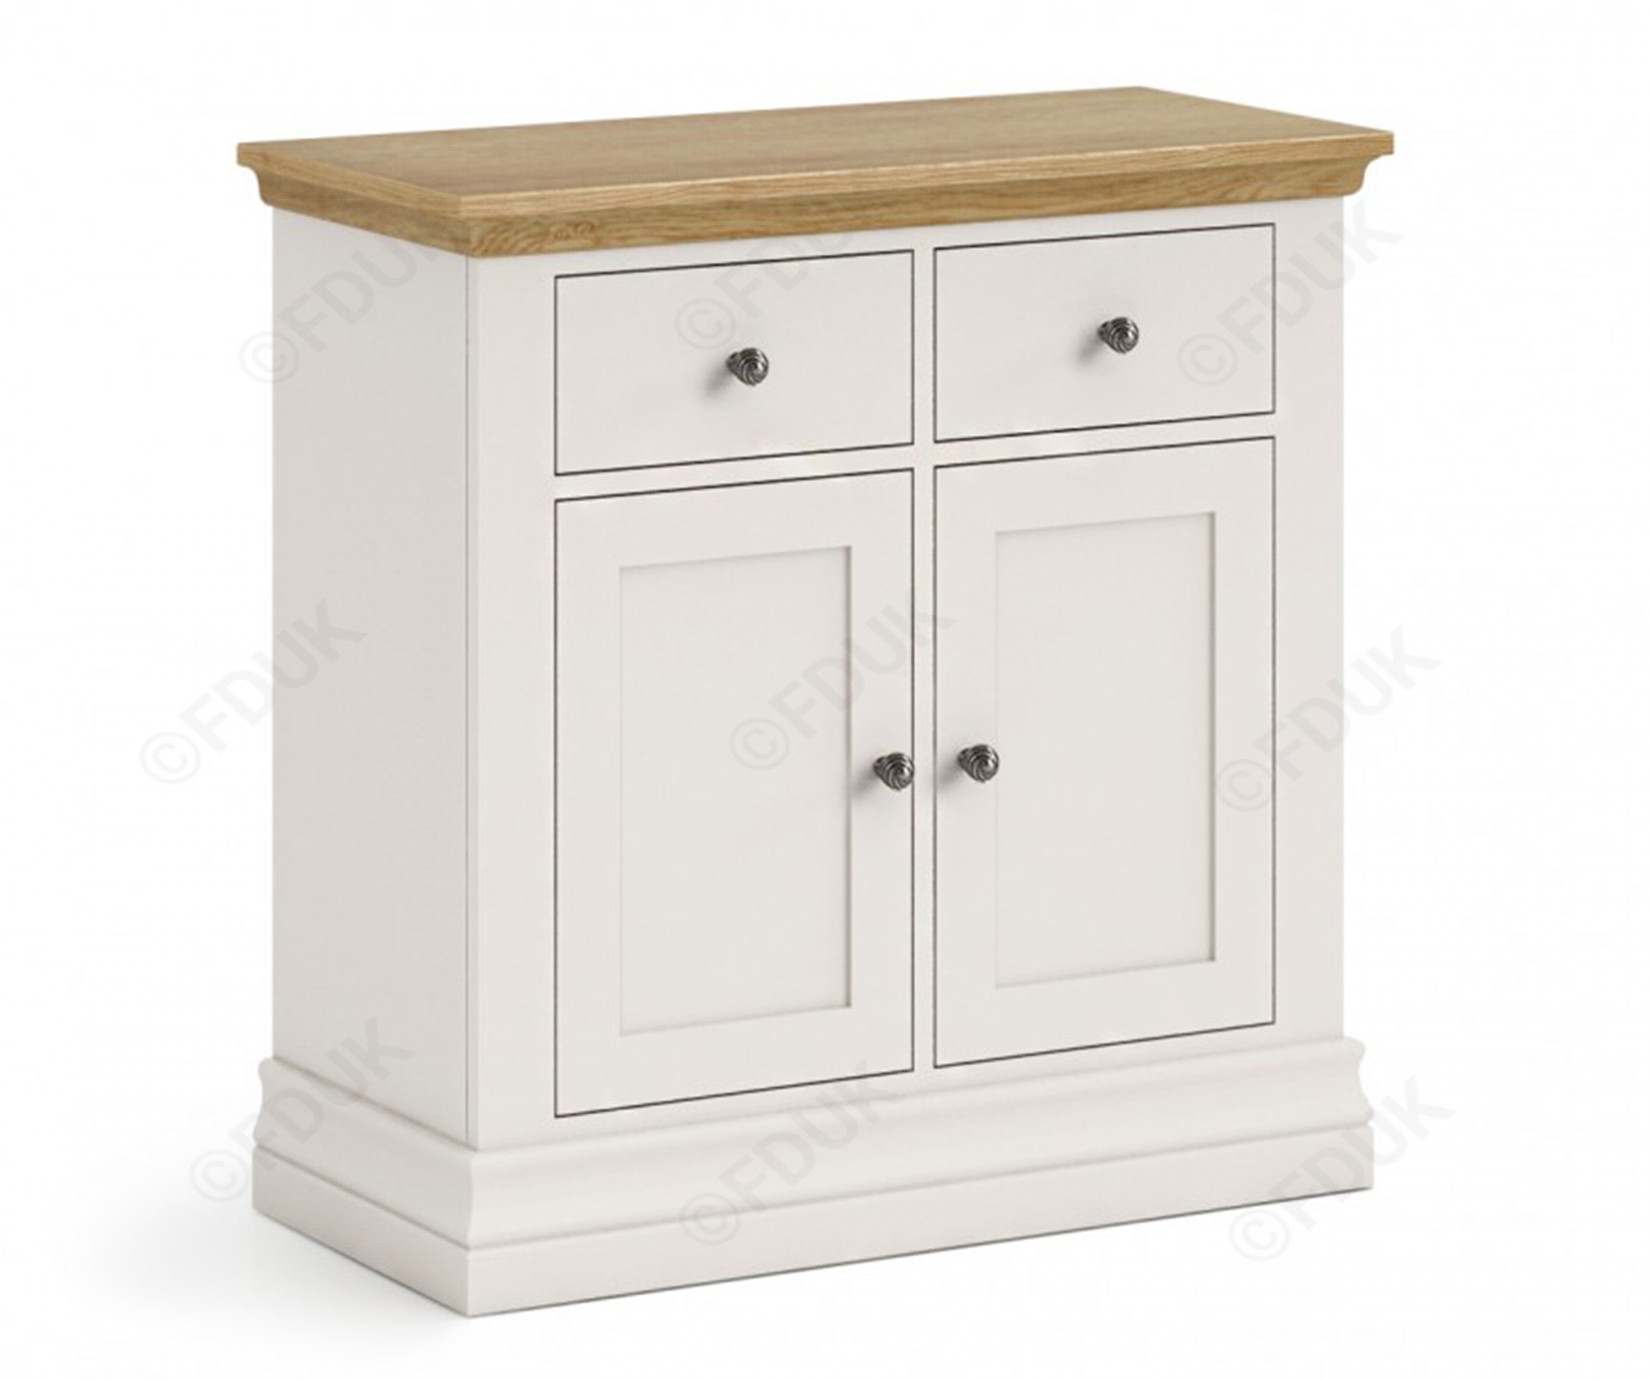 Corndell Annecy Mini Sideboard Fduk Best Price Guarantee We Will Beat Our  Competitors Price! Give Our Sales Team A Call On 0116 235 77 86 And We Will regarding Annecy Sideboards (Image 17 of 30)